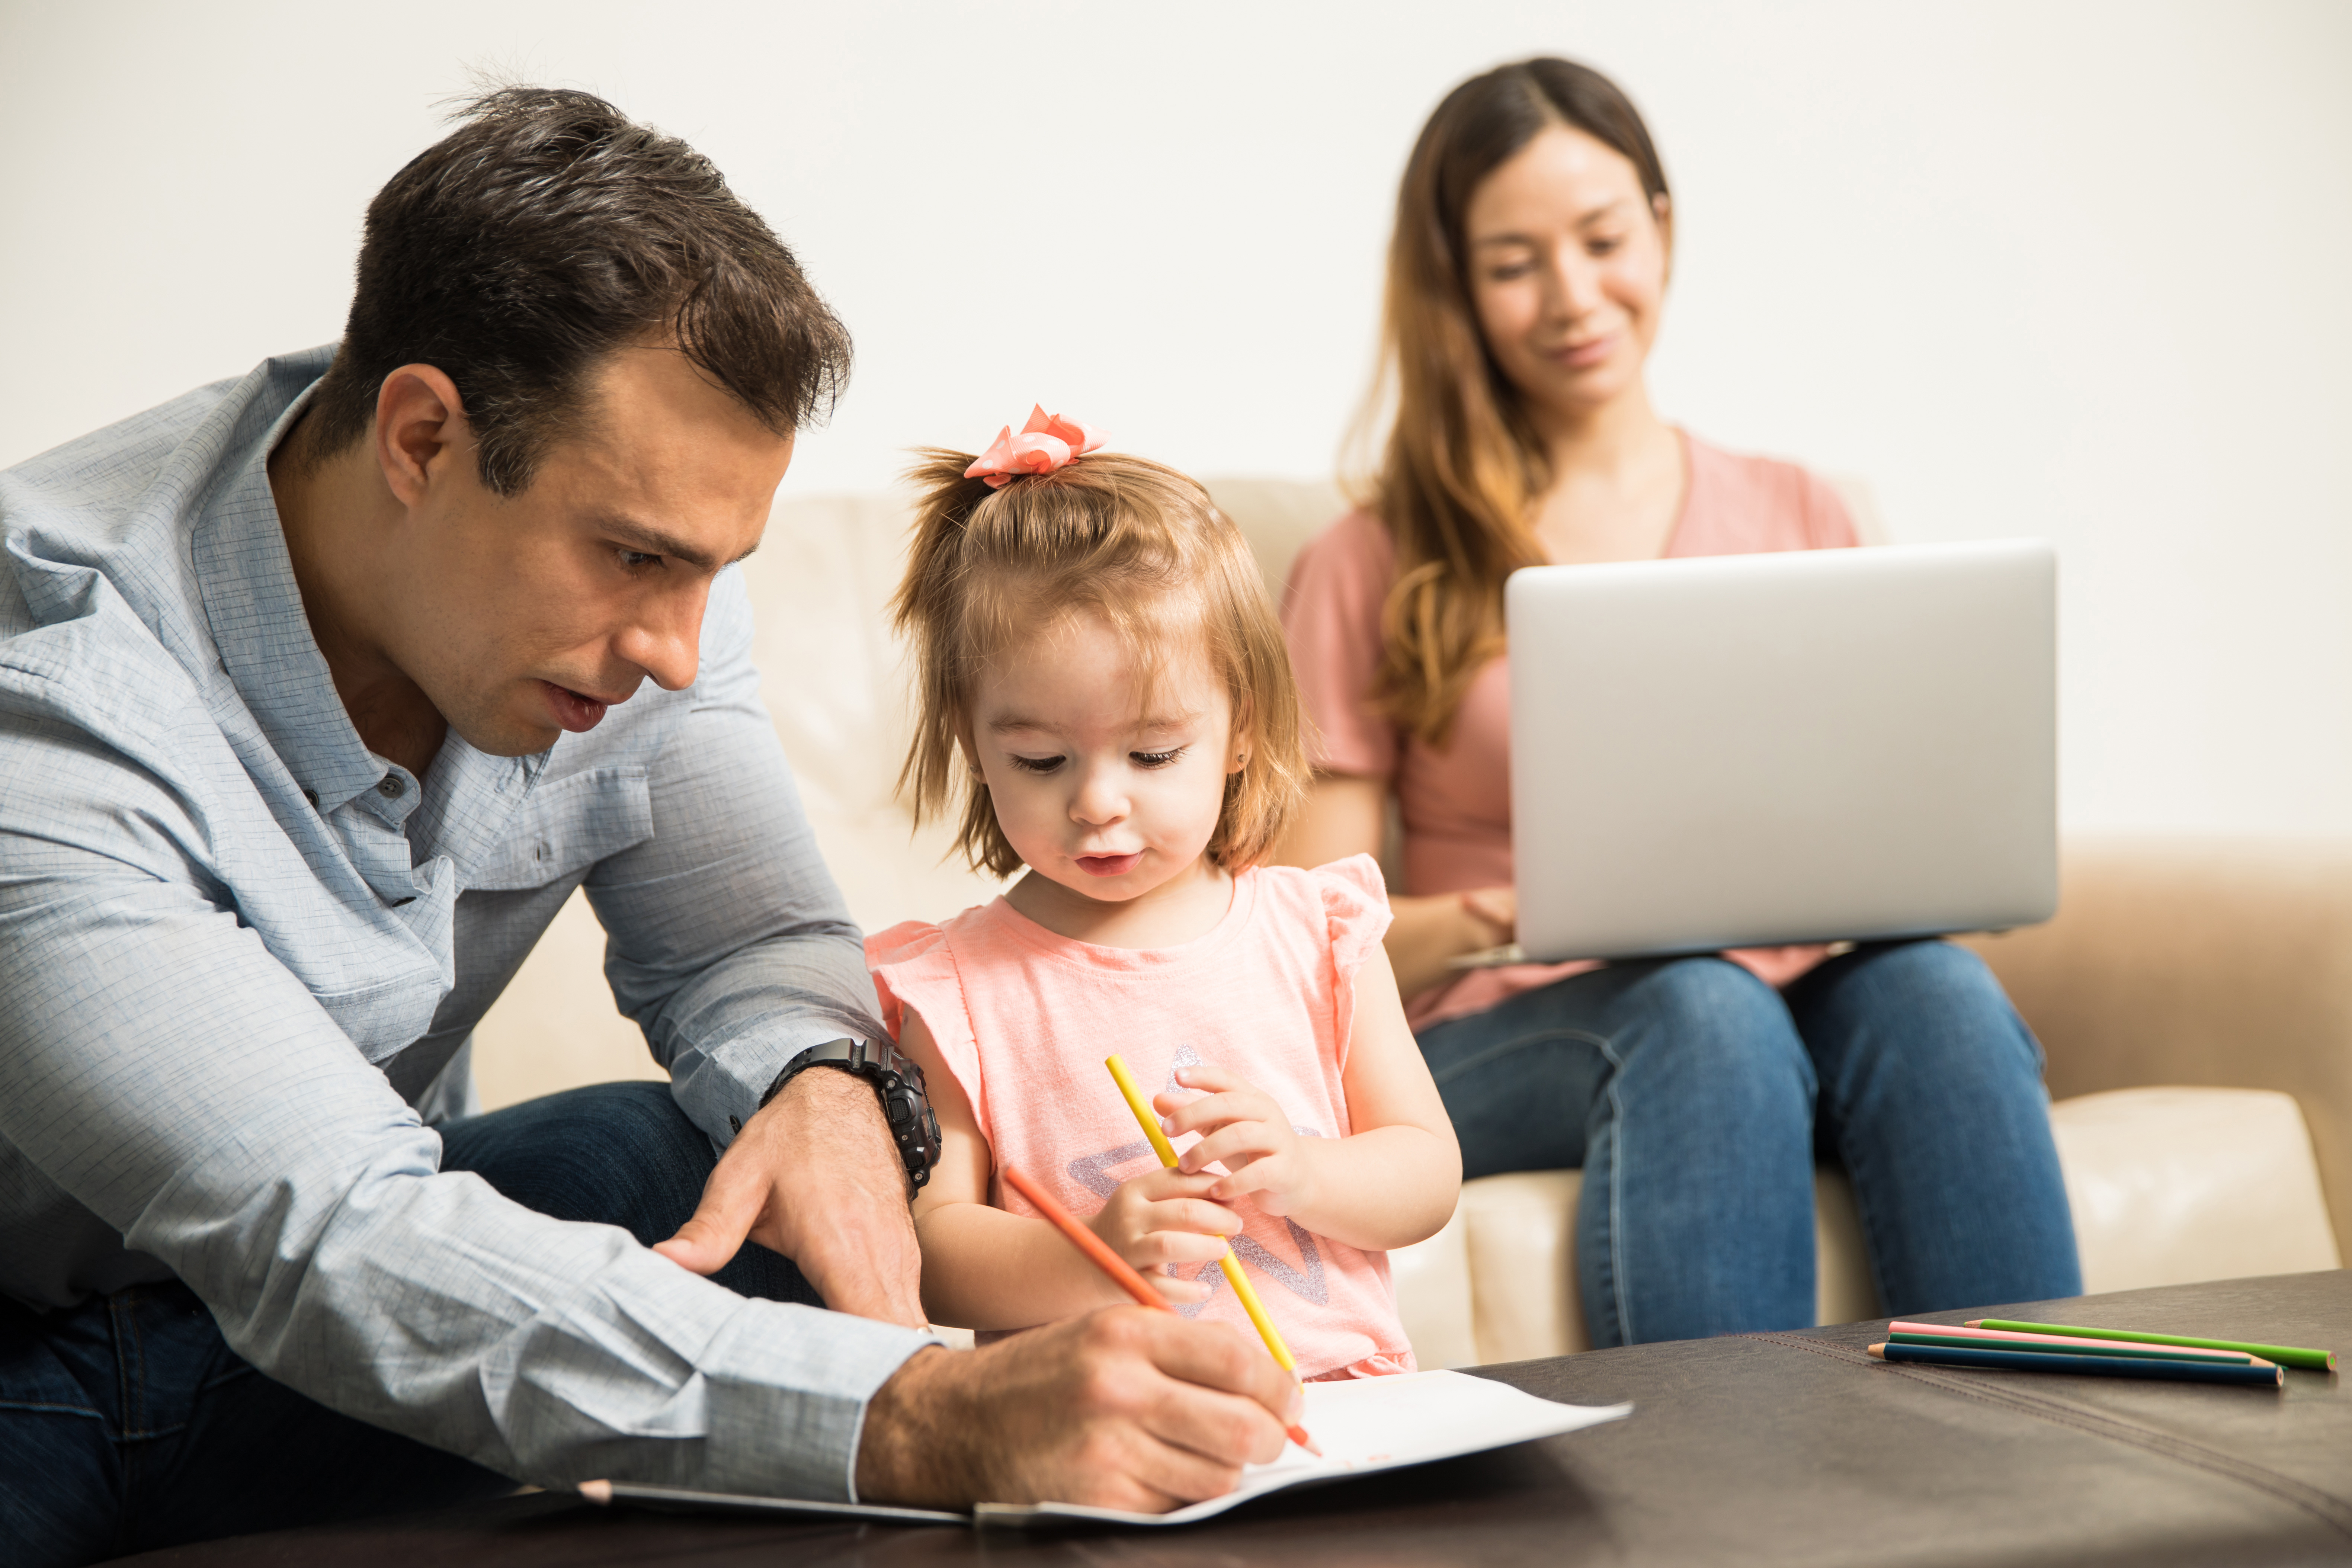 Latin dad drawing with her attentive daughter while her happy mom works in her laptop